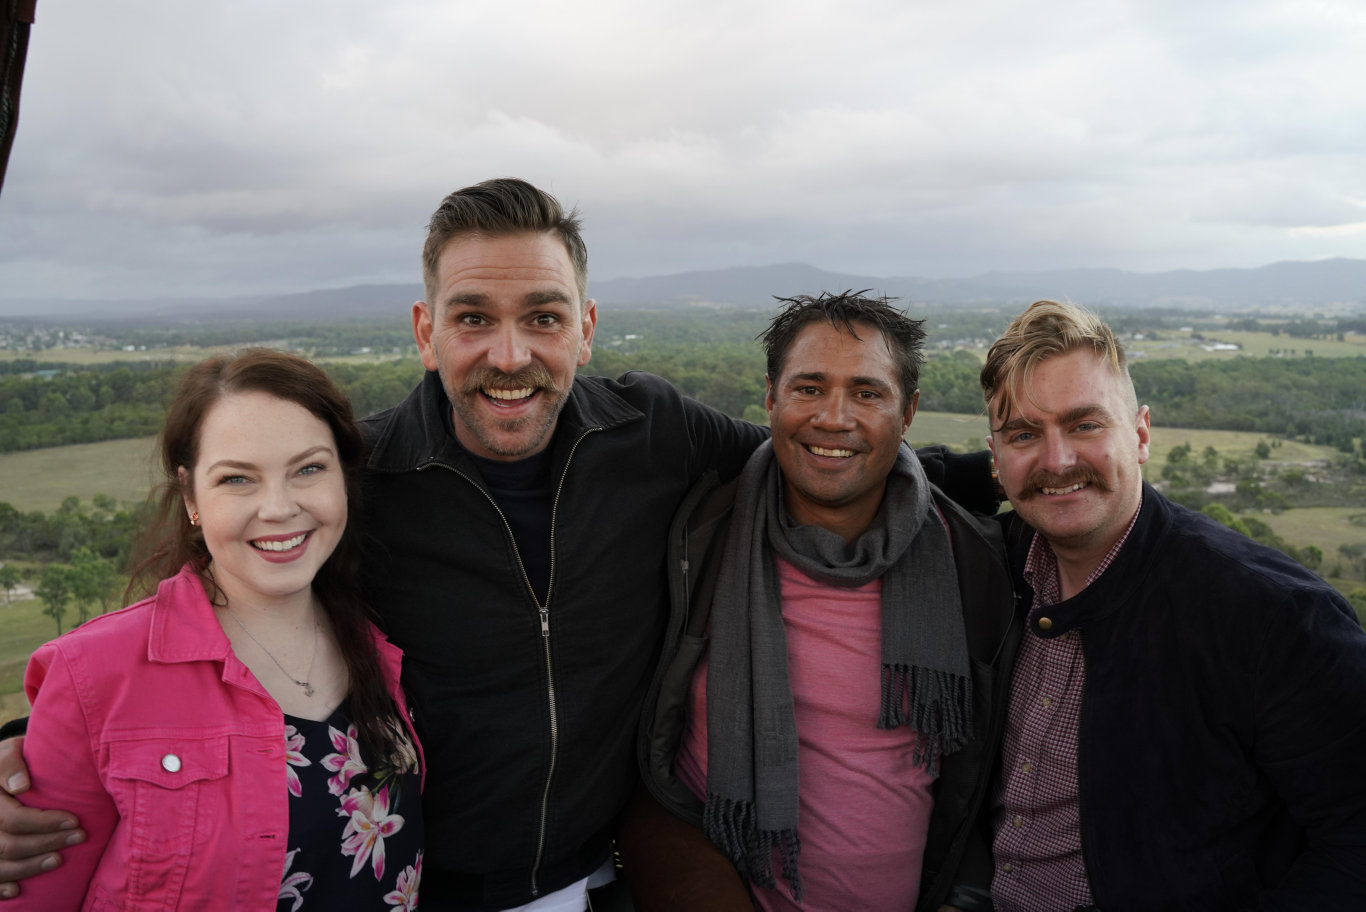 Comedian Harley Breen, second from left, returns in three new episodes of the TV series Taboo.